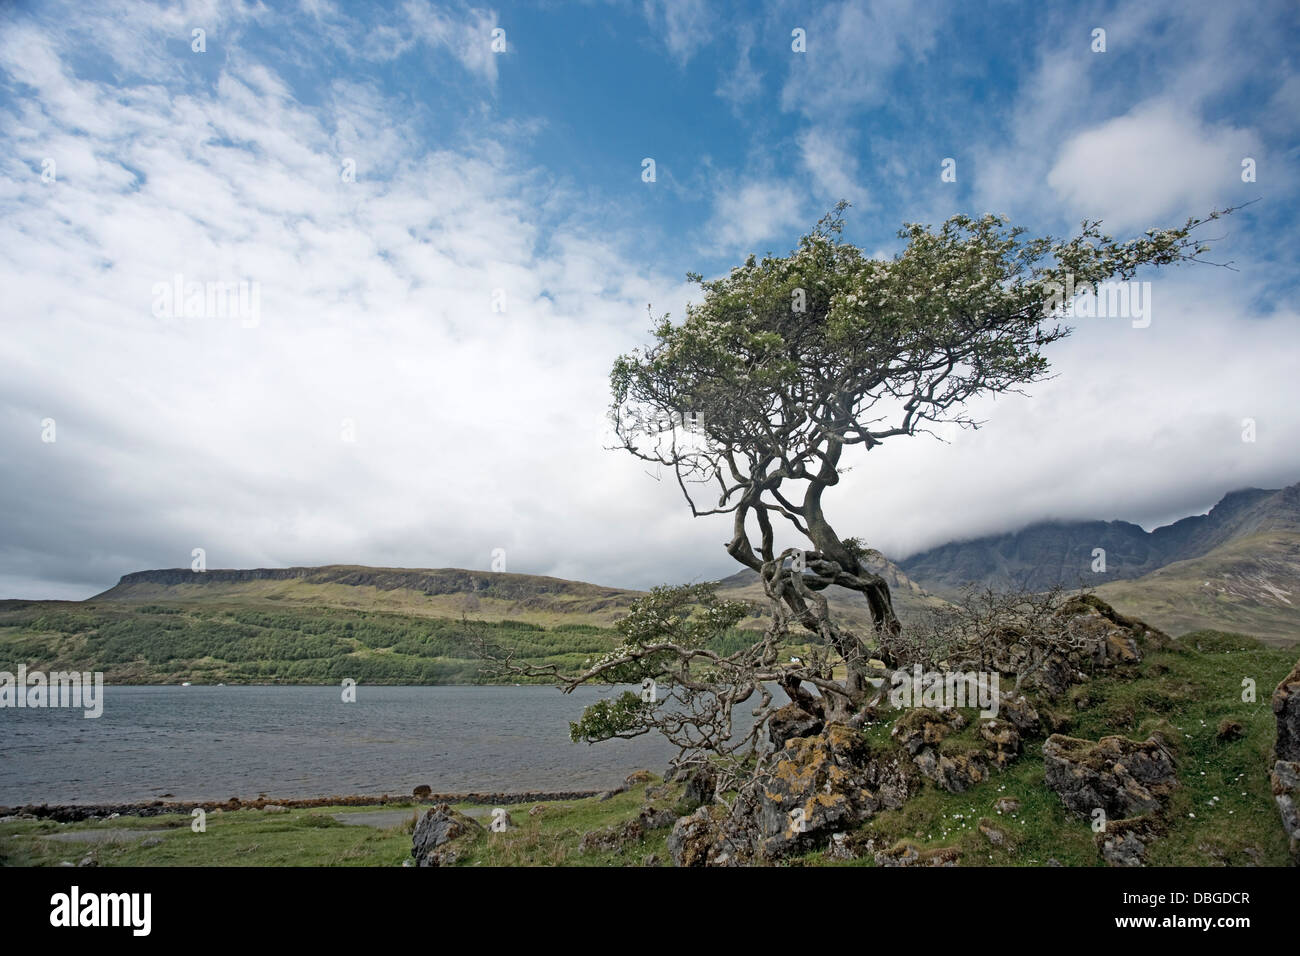 View across Loch Slapin Isle of Skye, Inner Hebrides Scotland, UK LA006259 - Stock Image